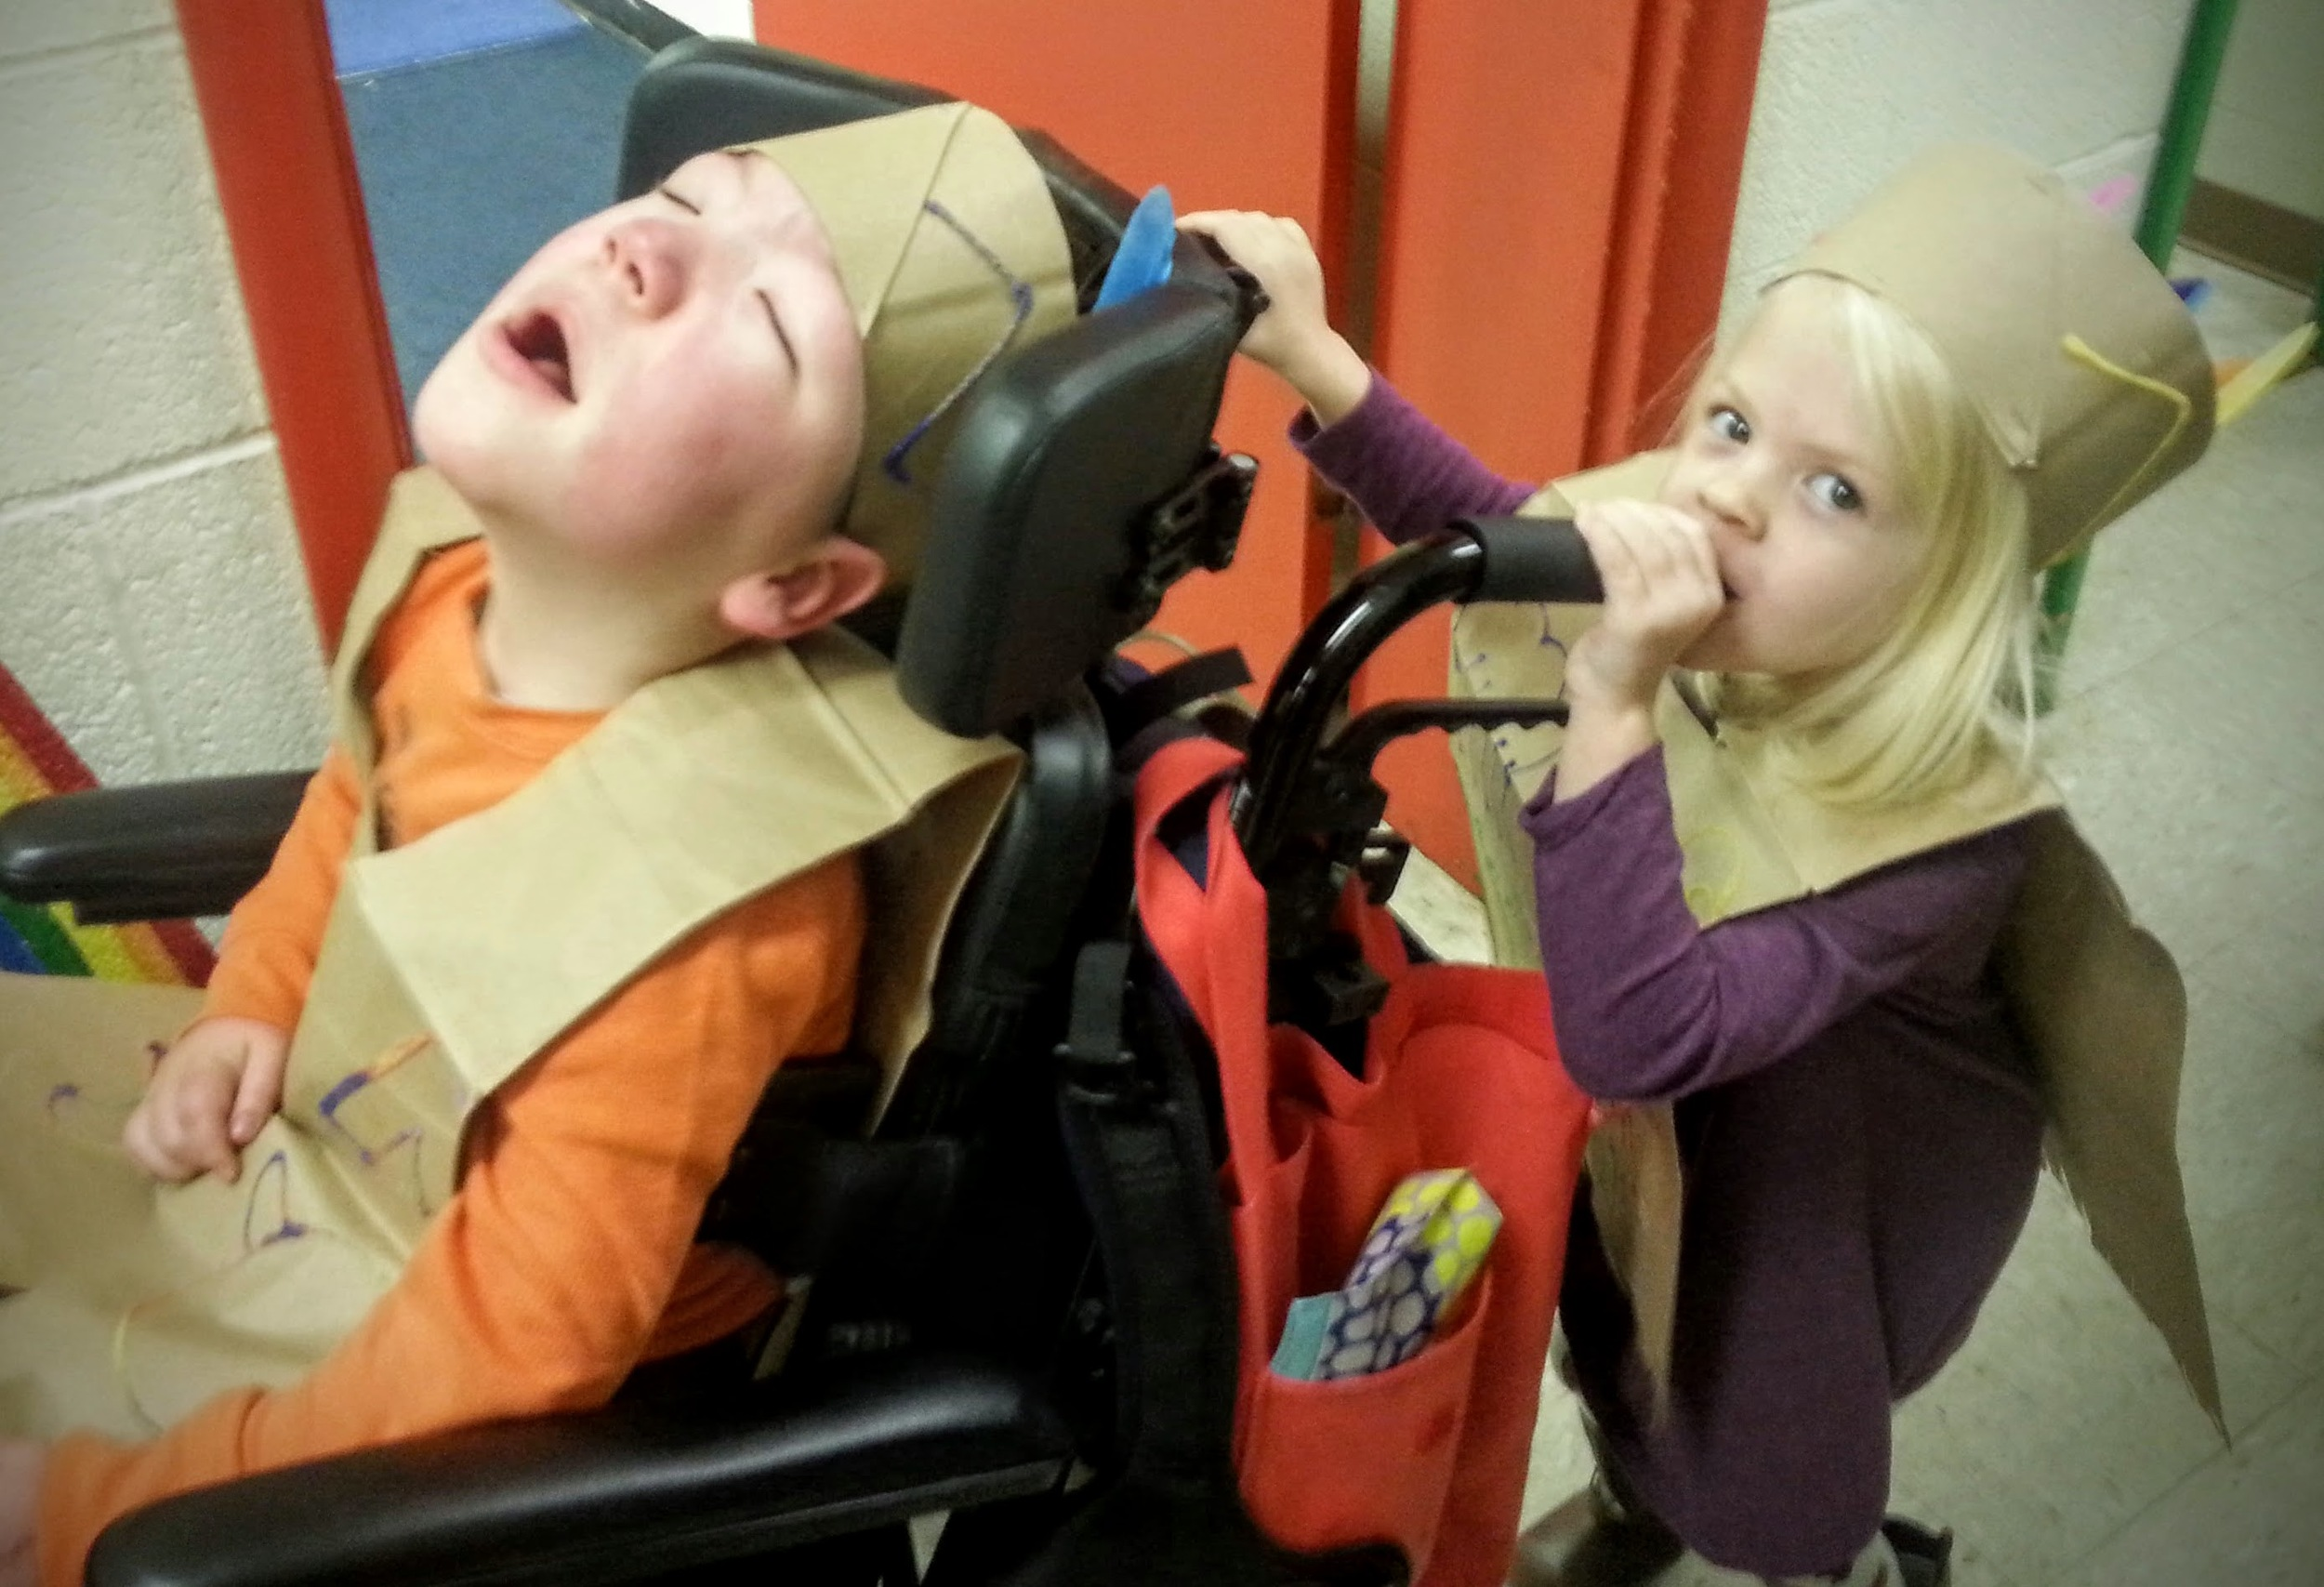 """Clowning around with one of his best buds while waiting in line for the program. She is talking into the hole in his wheelchair handle, saying """"Whatcha doin' down there, Collin?!"""""""